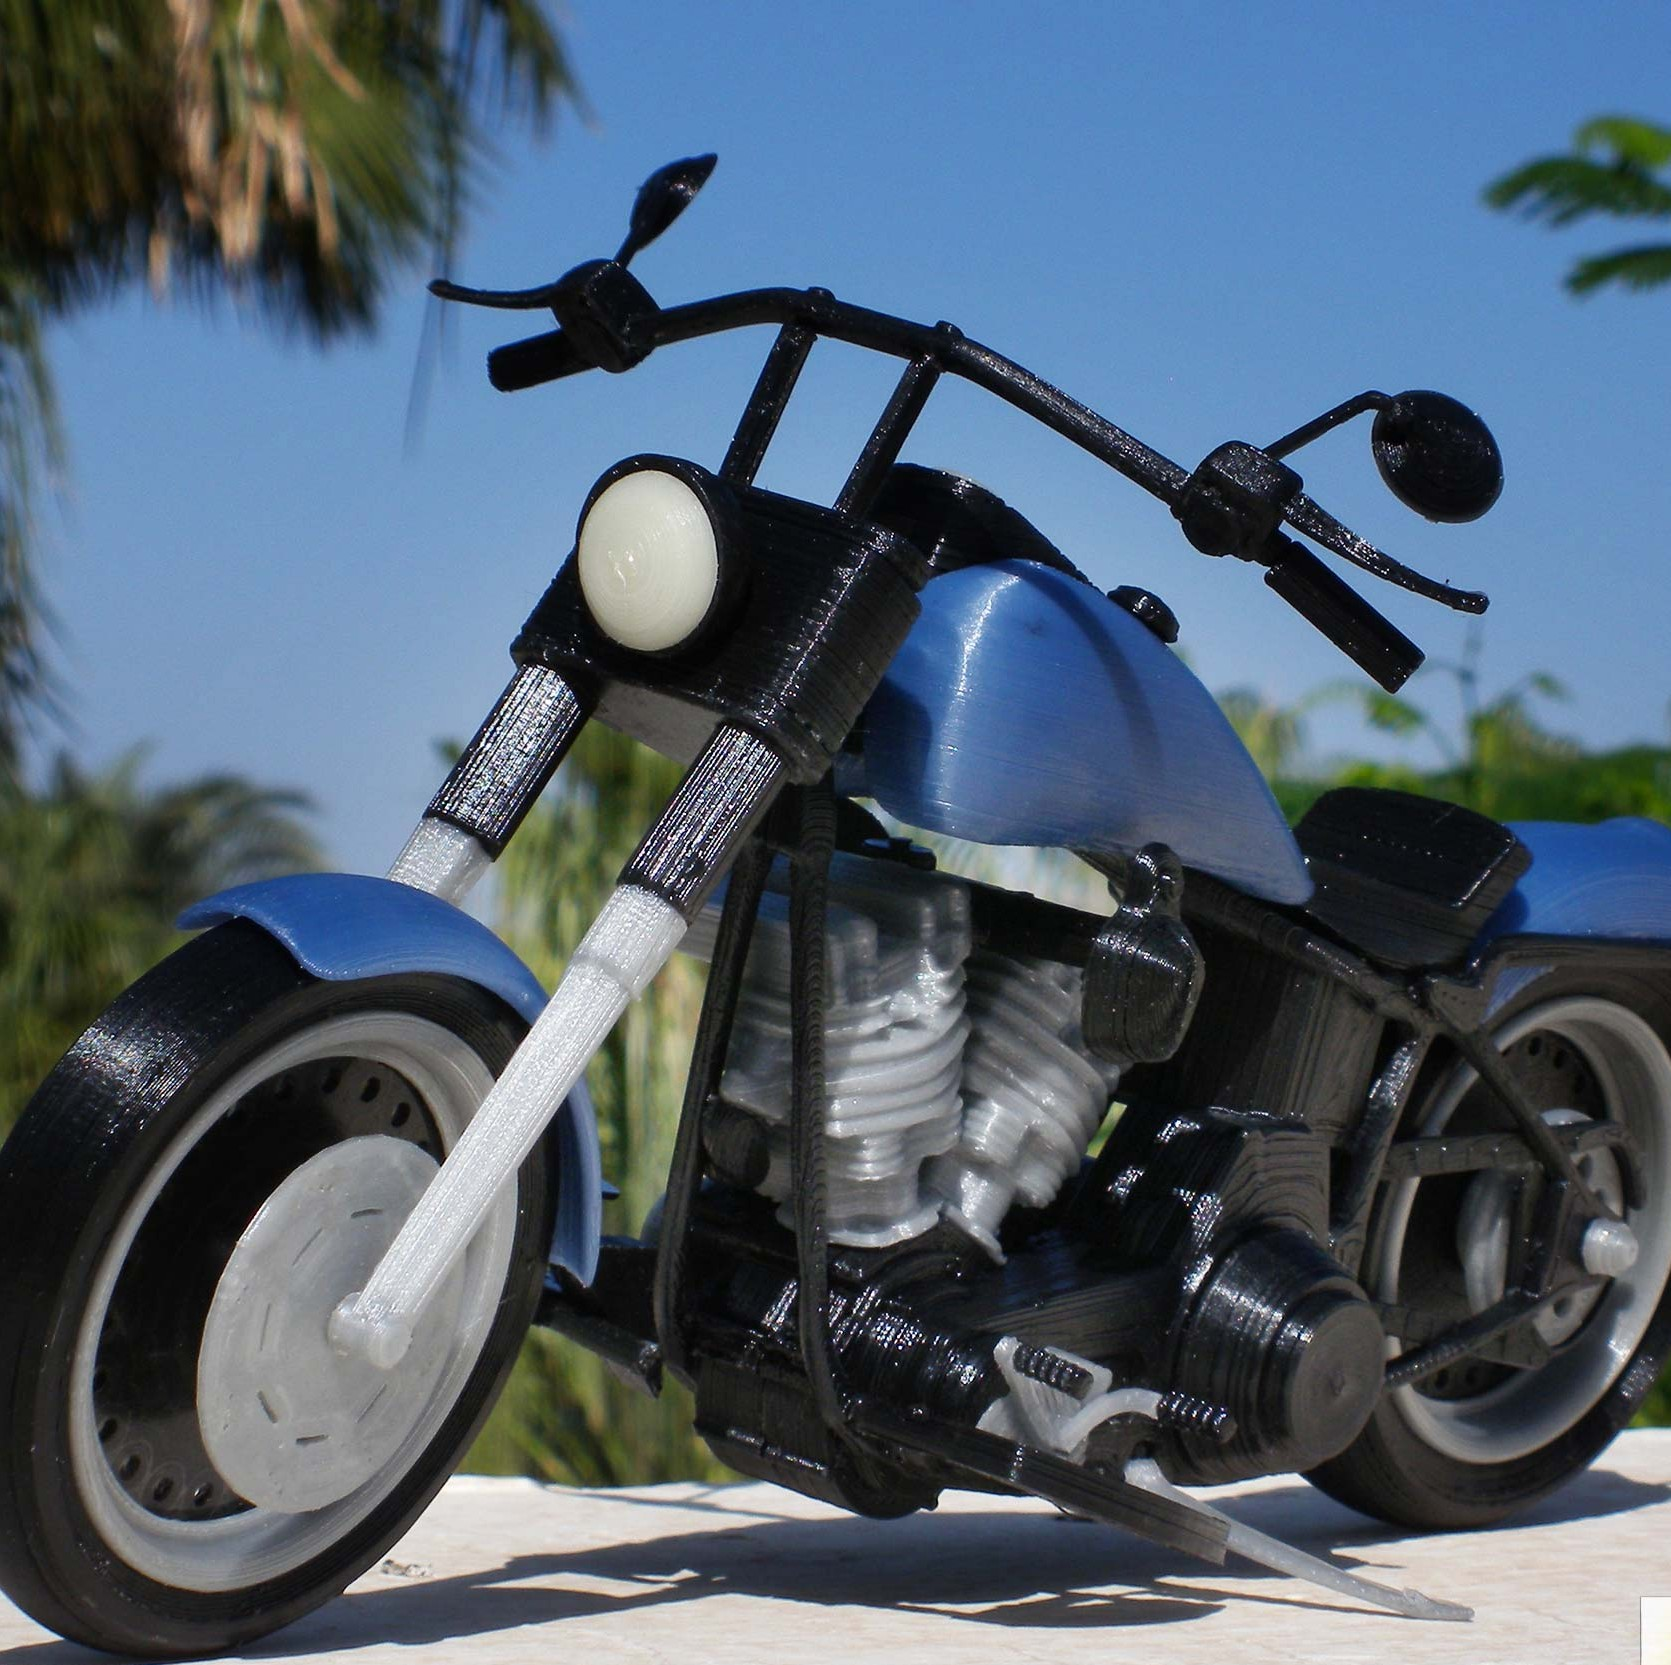 Fat Boy Motorcycle's Urban Legend Lives on Through 3D Printing